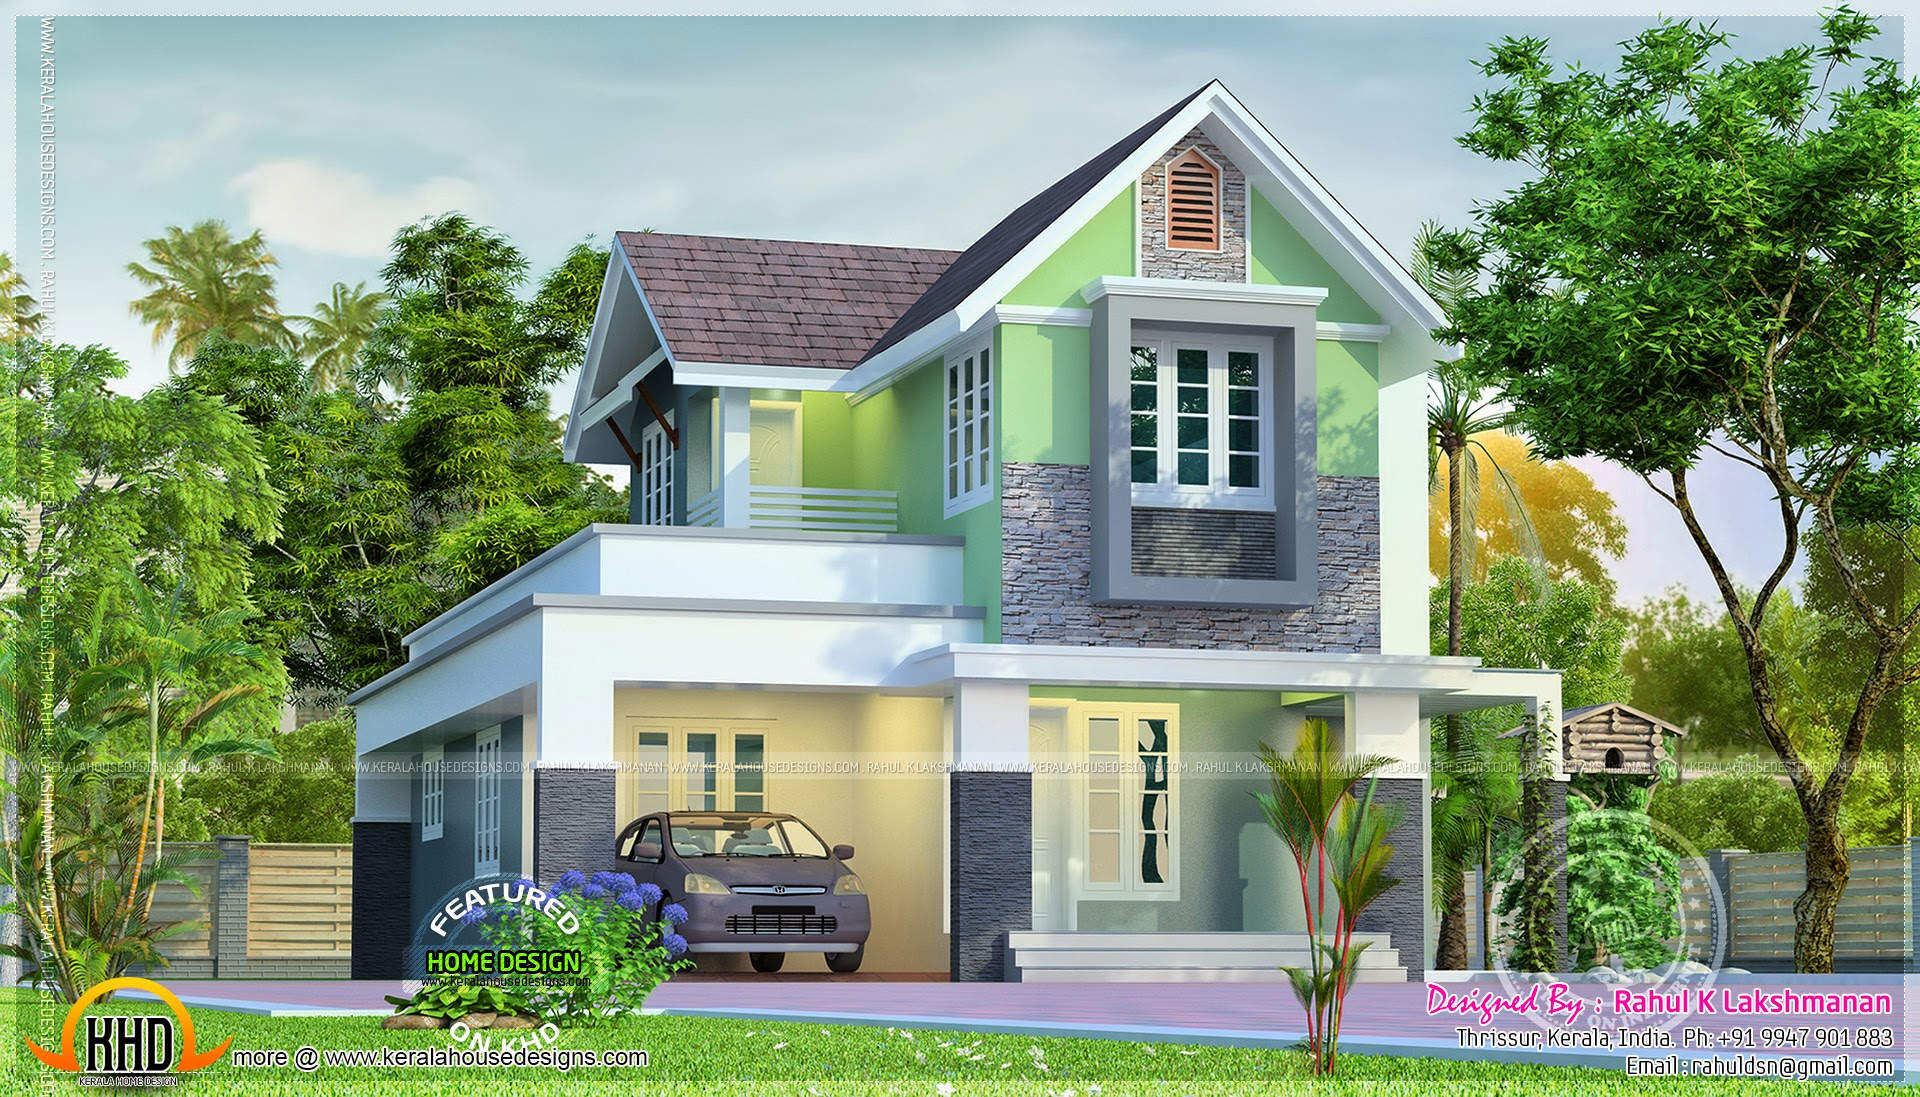 Cute little house plan kerala home design and floor plans for Little house design